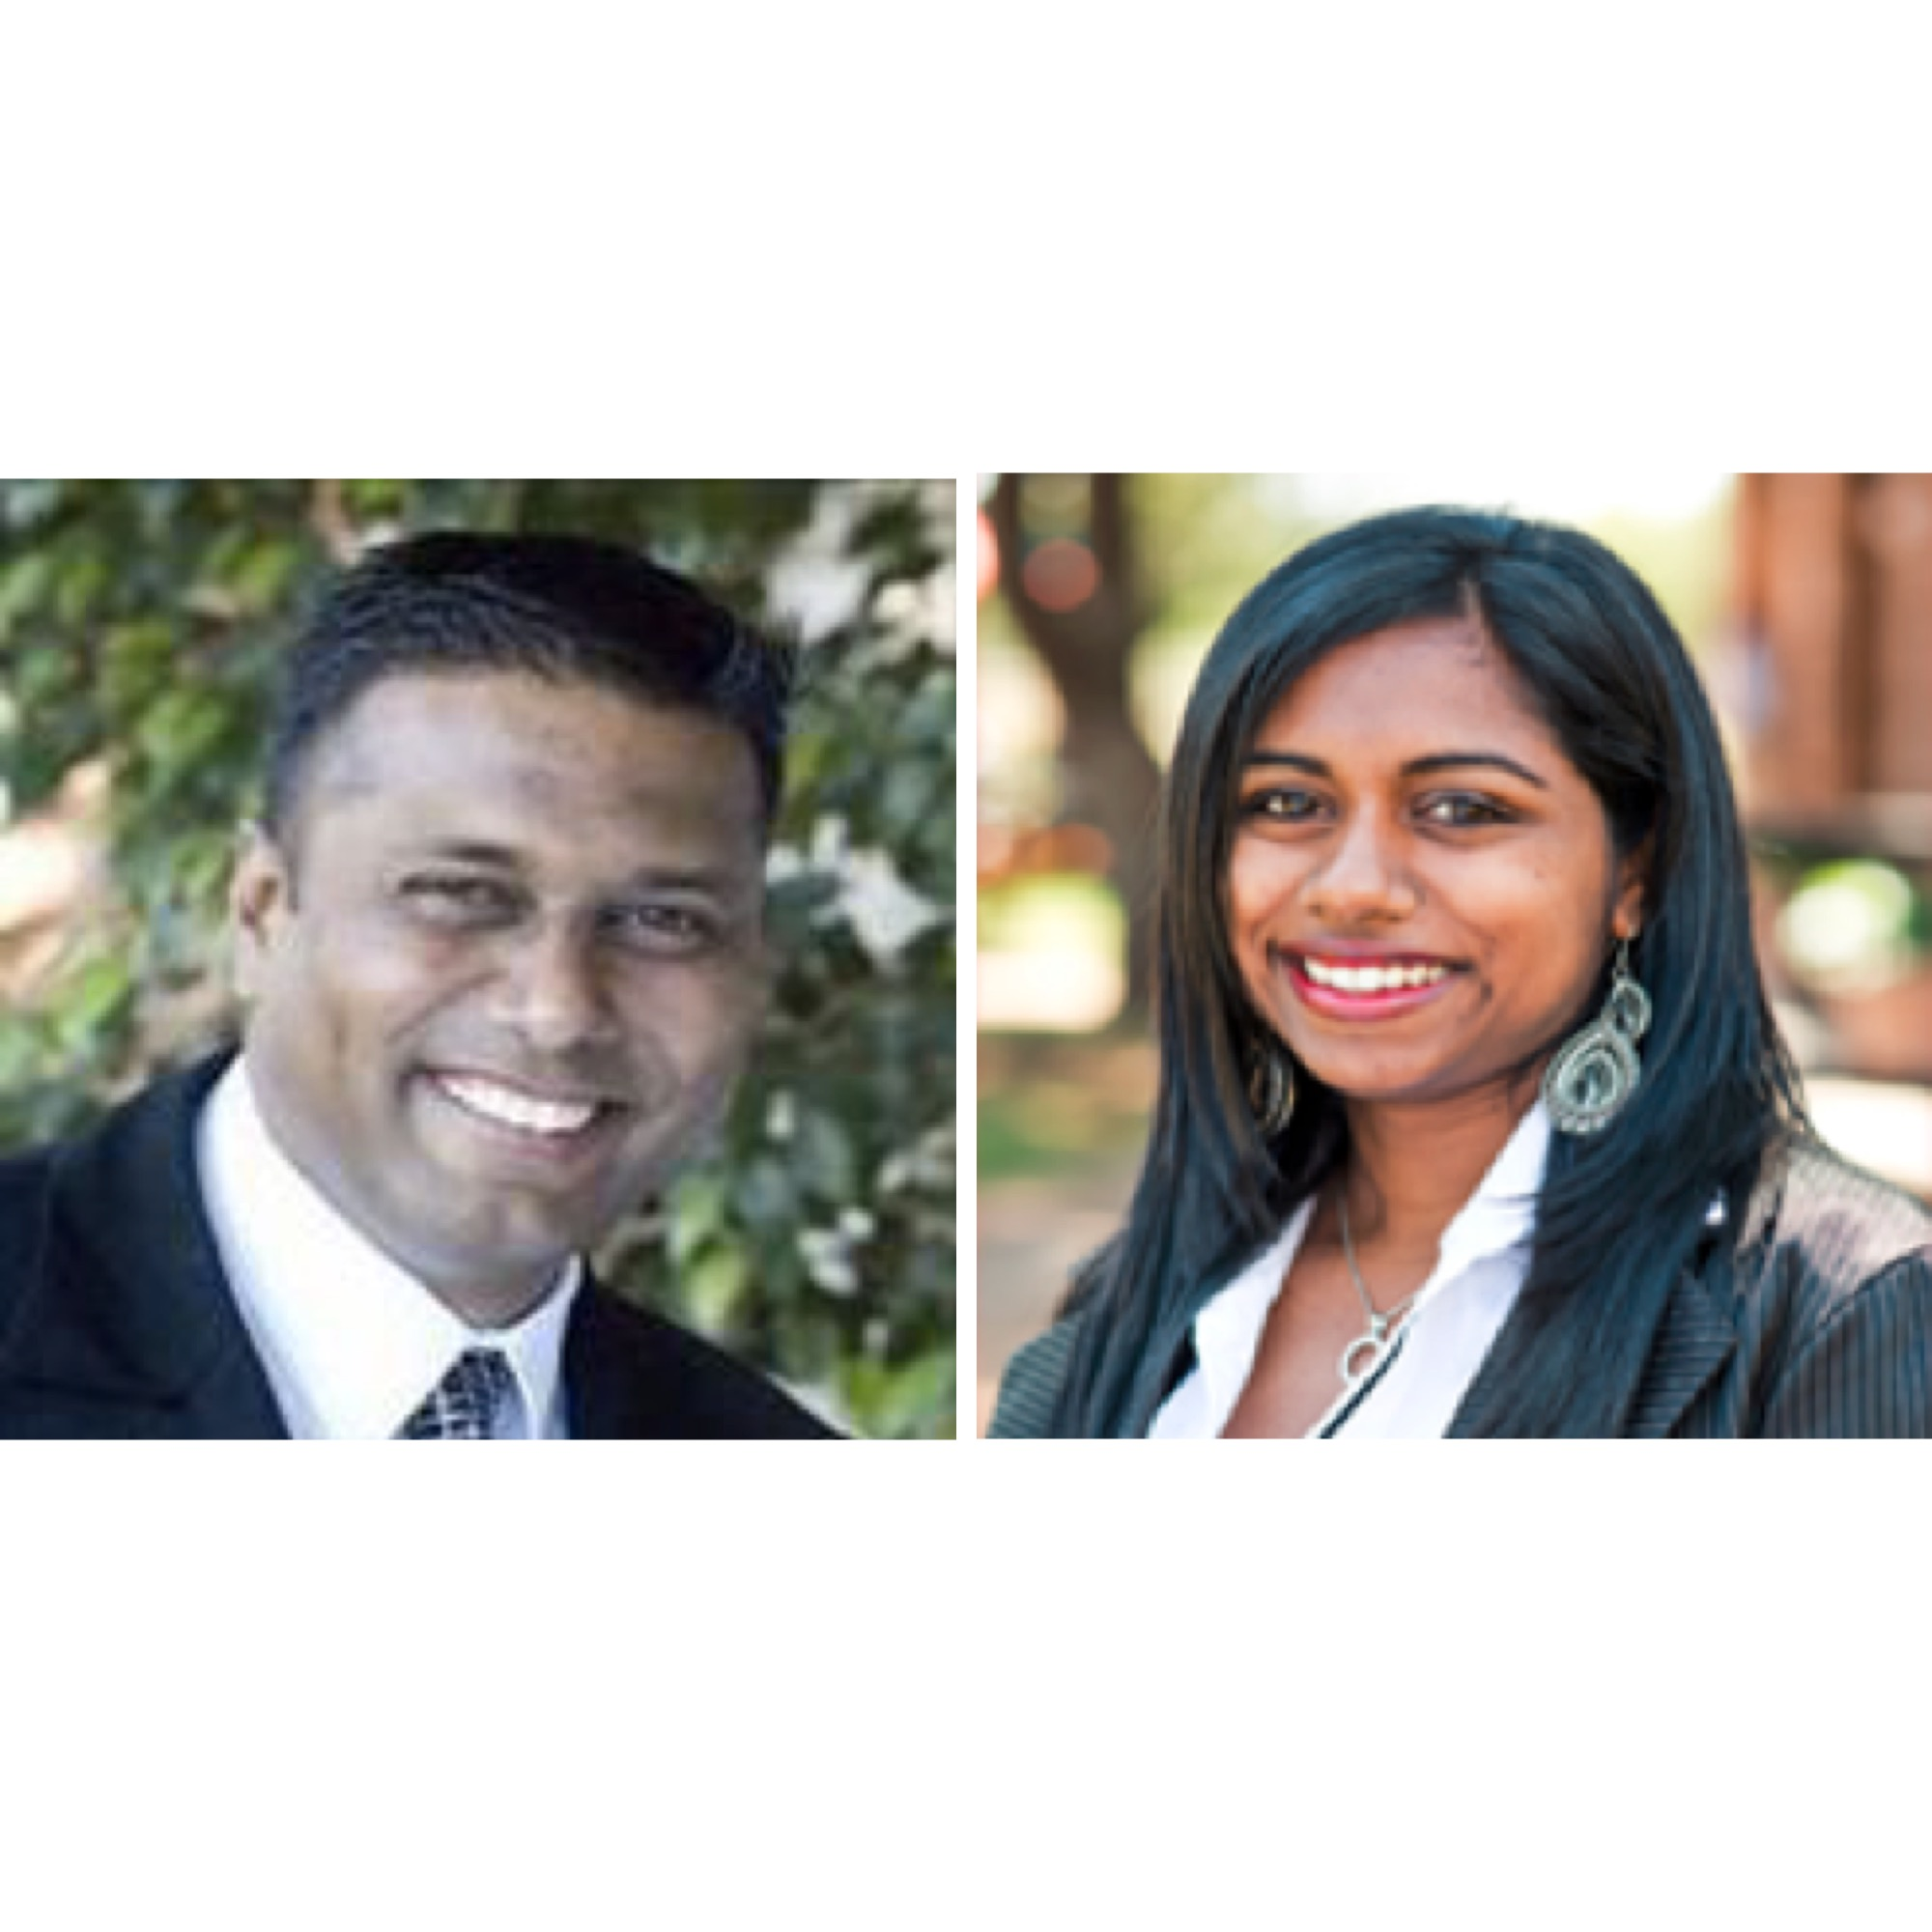 Mr. Dayalan Govender & Ms. Nicole Pillay